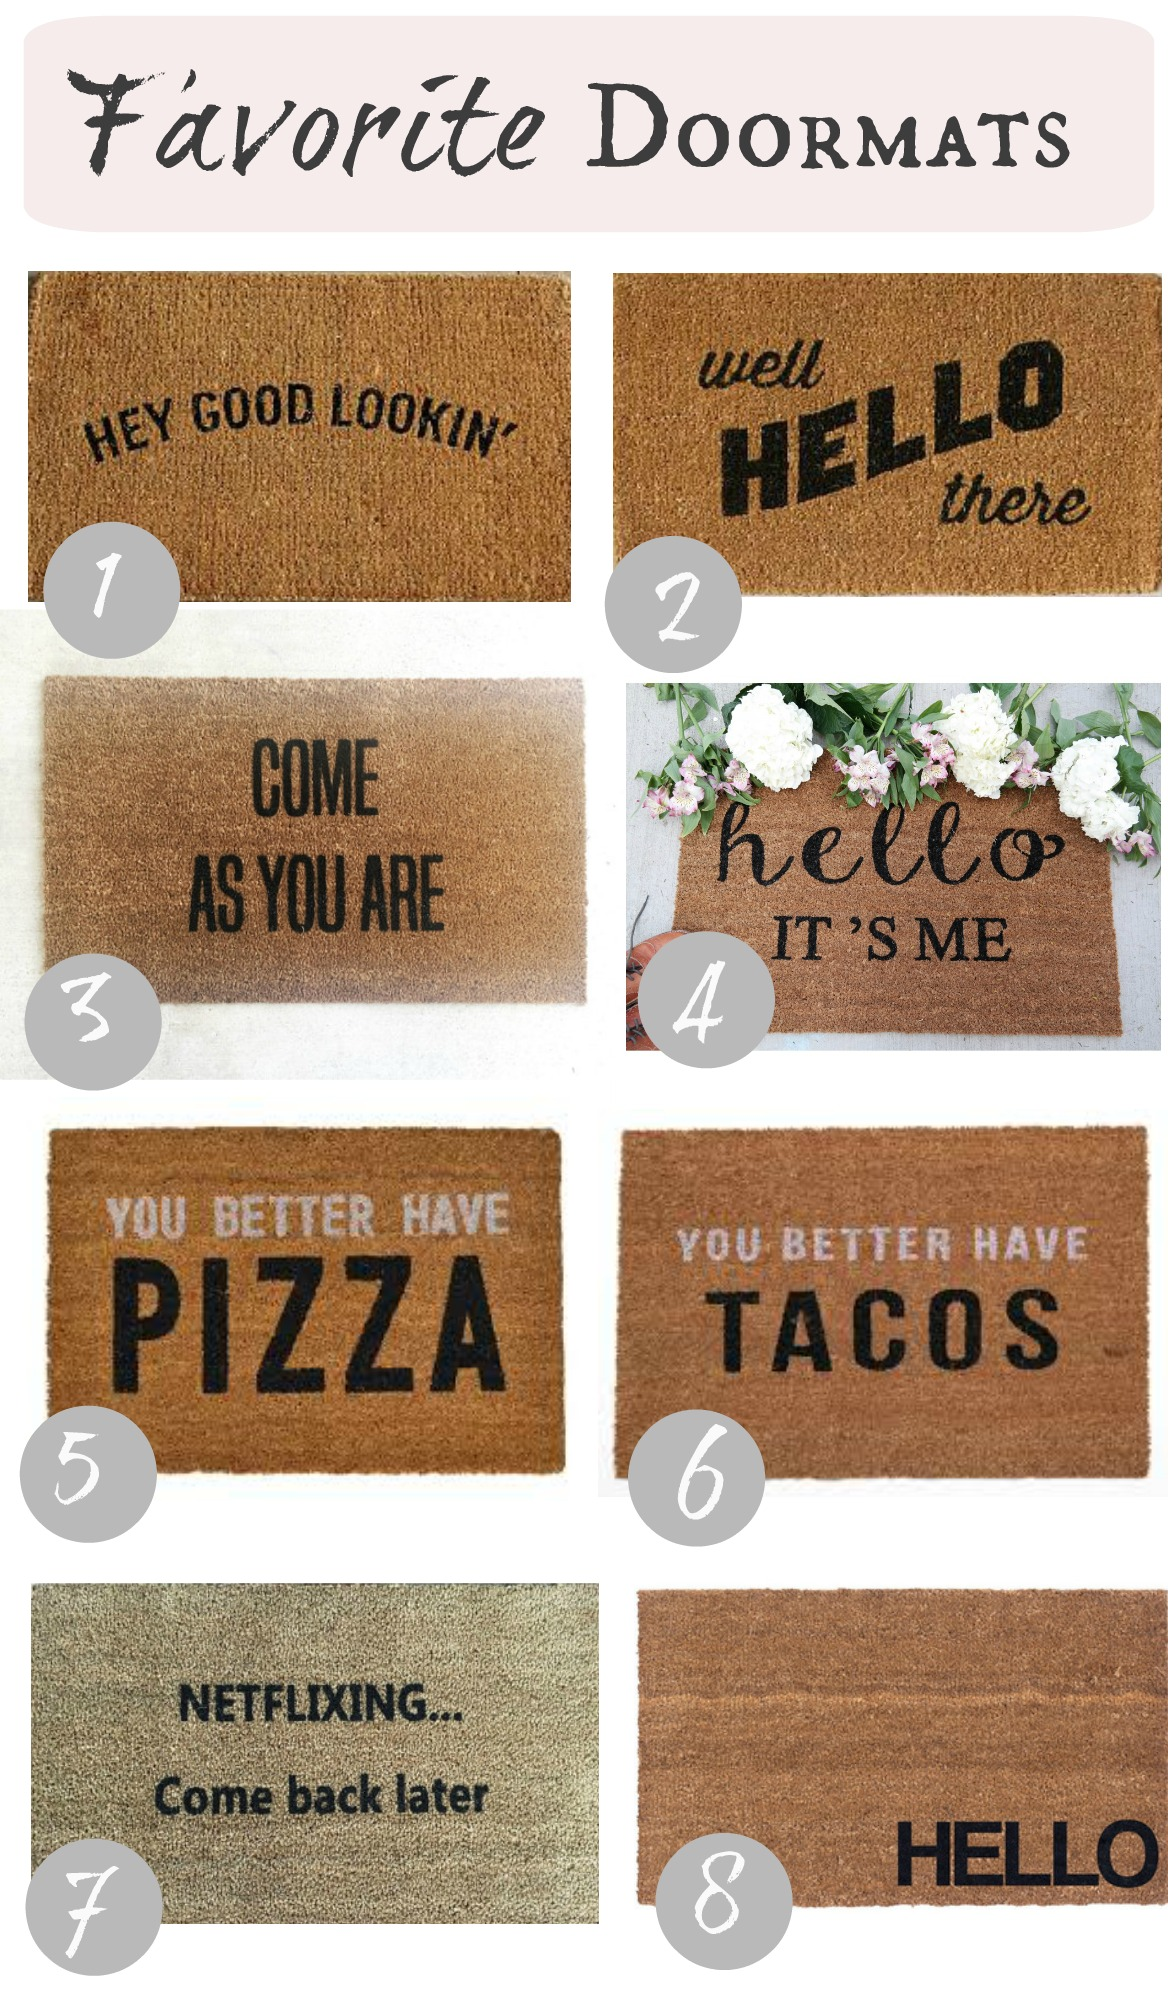 apartment door gift fullxfull hello il script listing font oh mat decor cute doormat mats housewarming calligraphy spring welcome